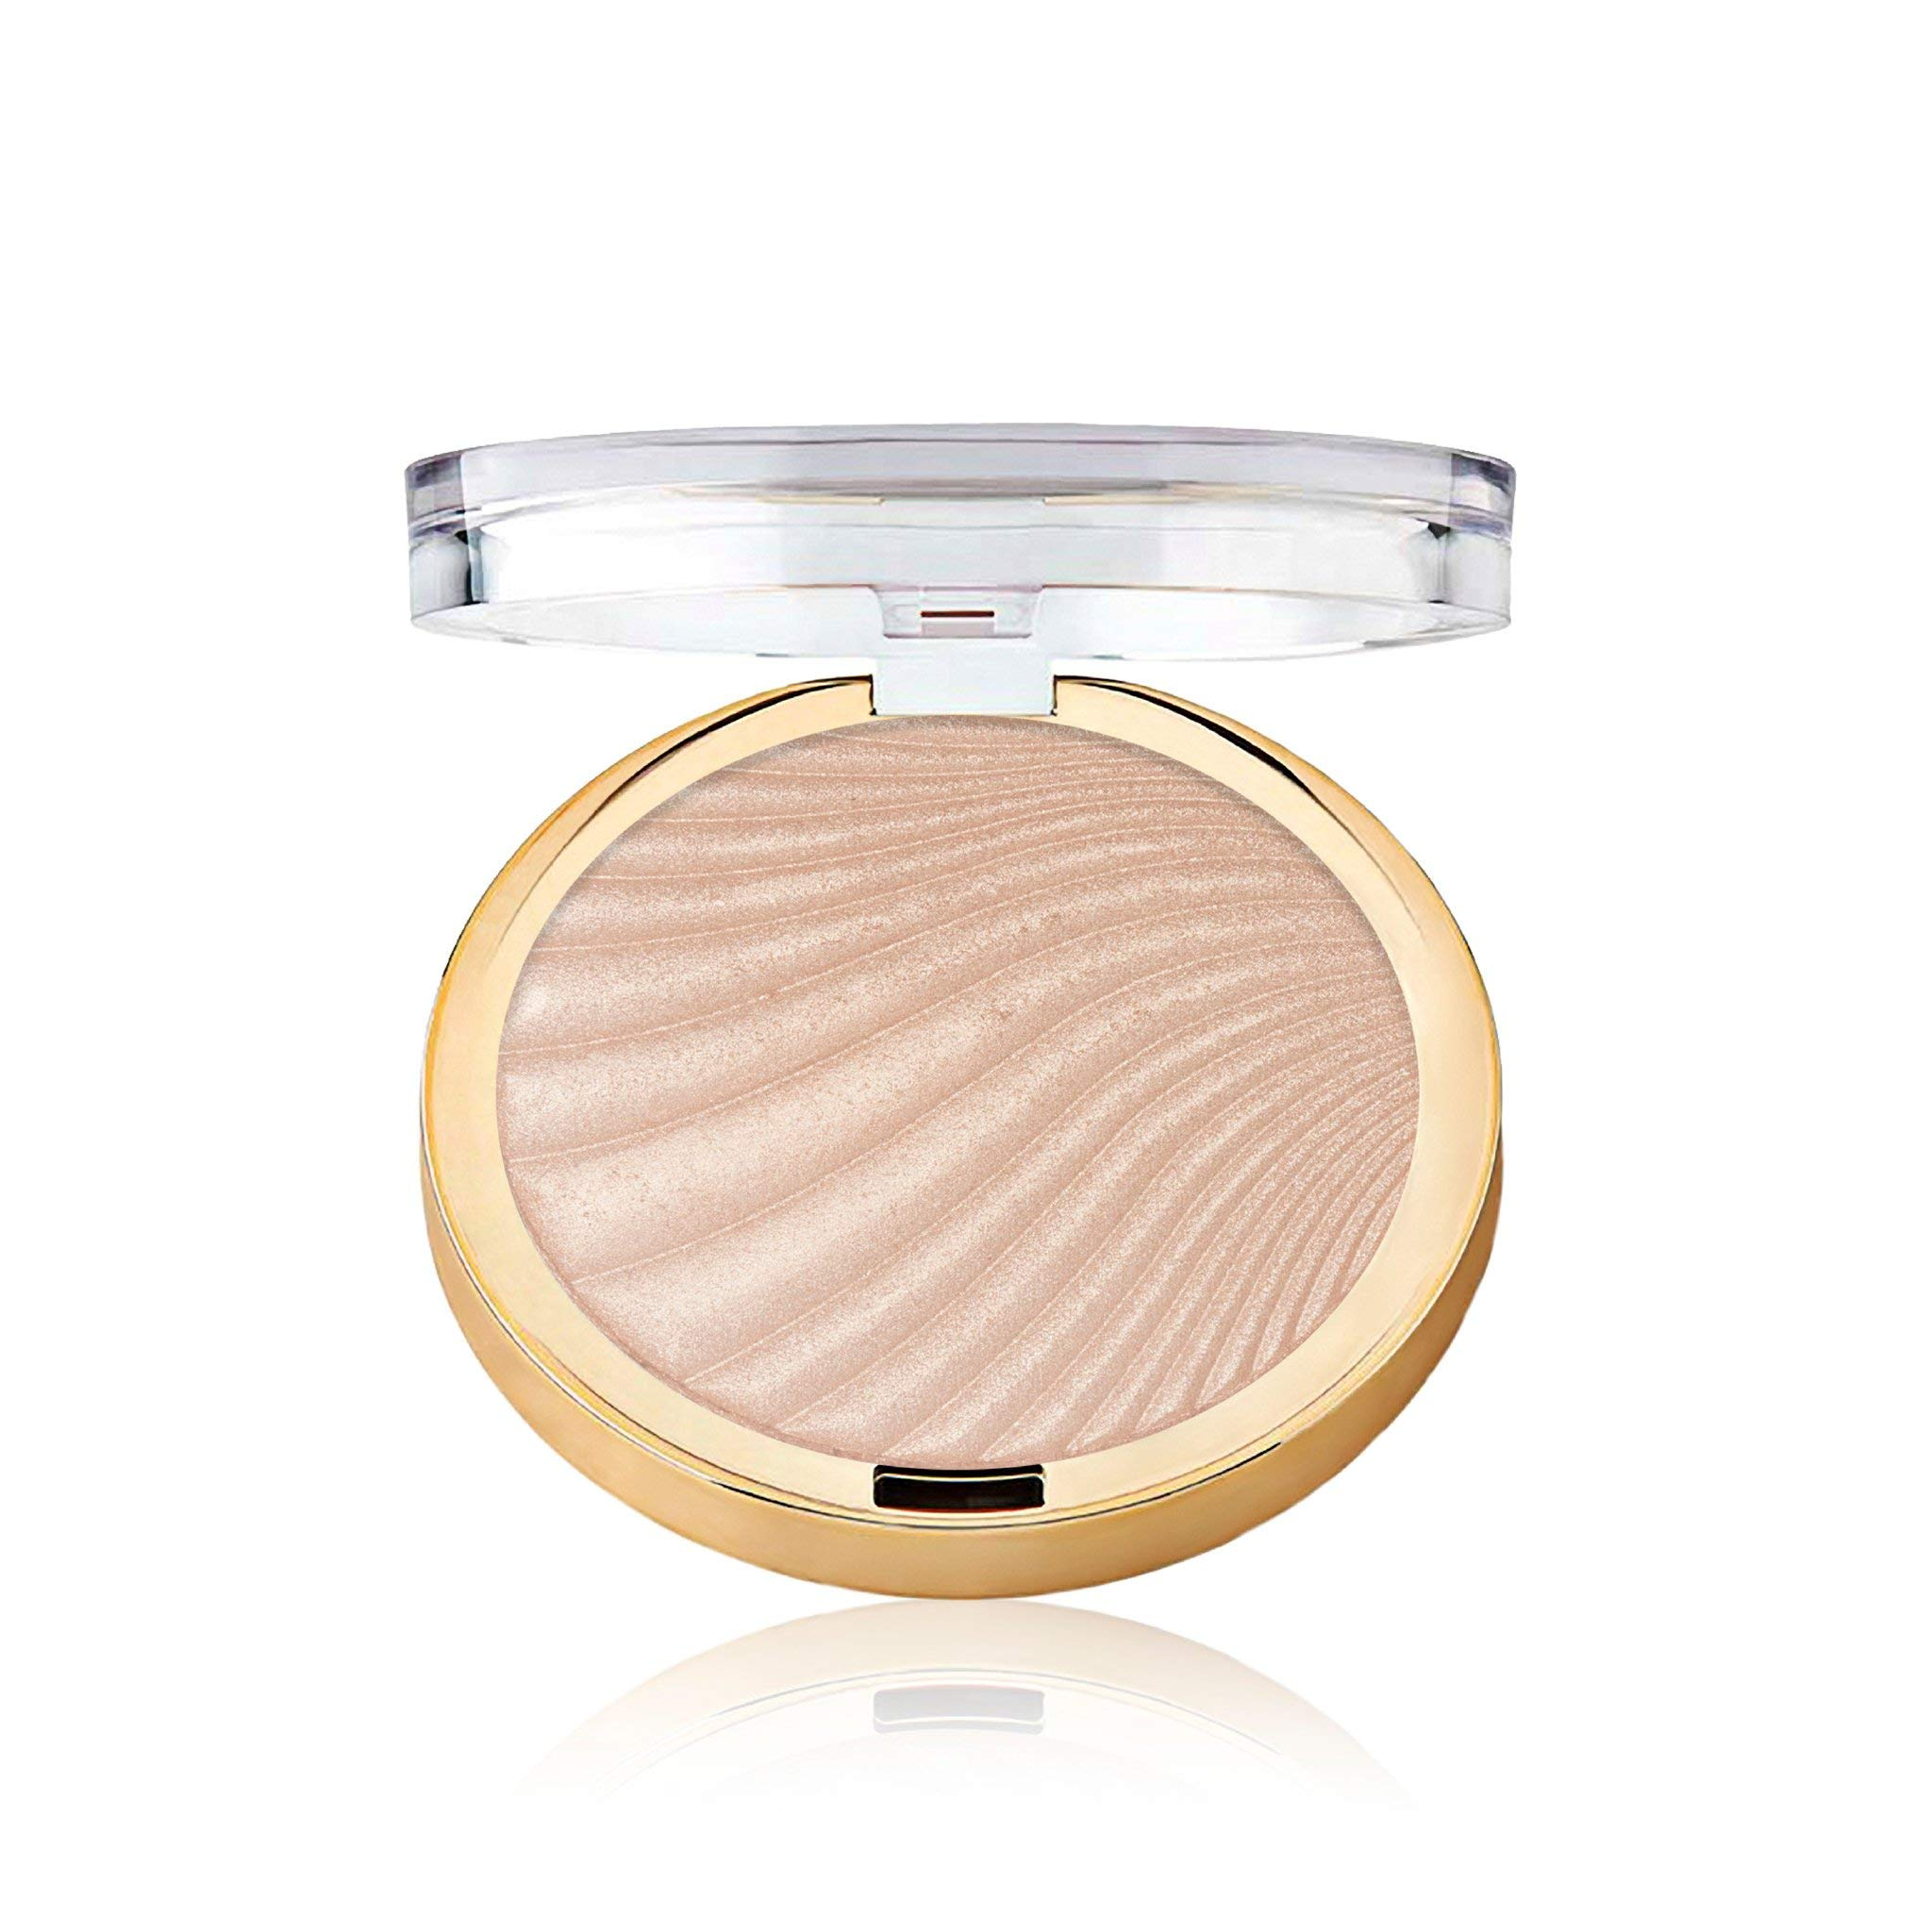 Milani Strobelight Instant Glow Powder - Afterglow (0.3 Ounce) Vegan, Cruelty-Free Face Highlighter - Shape, Contour & Highlight Features with Shimmer Shades